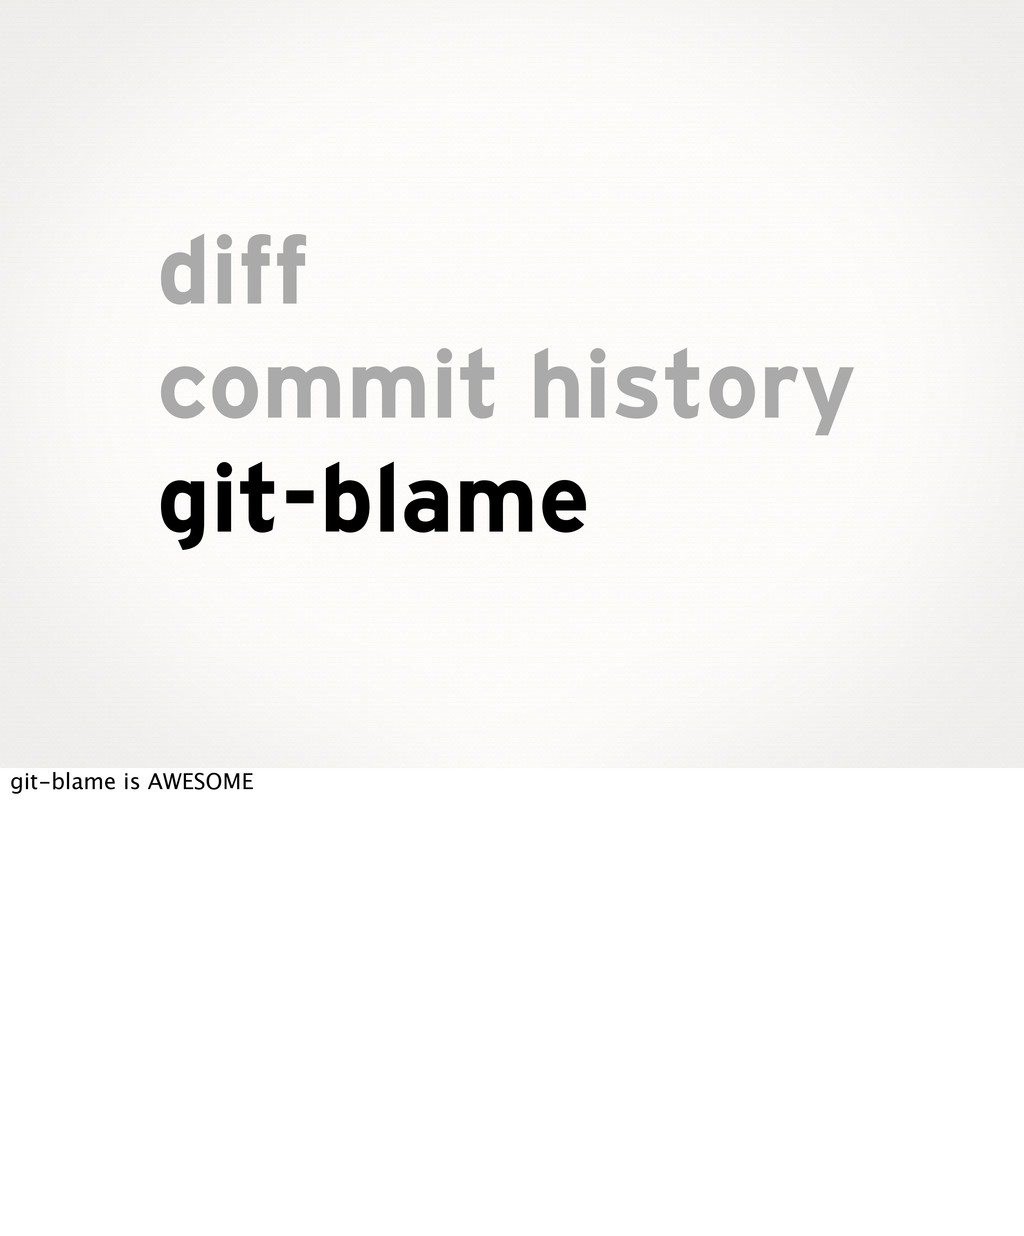 diff commit history git-blame git-blame is AWES...